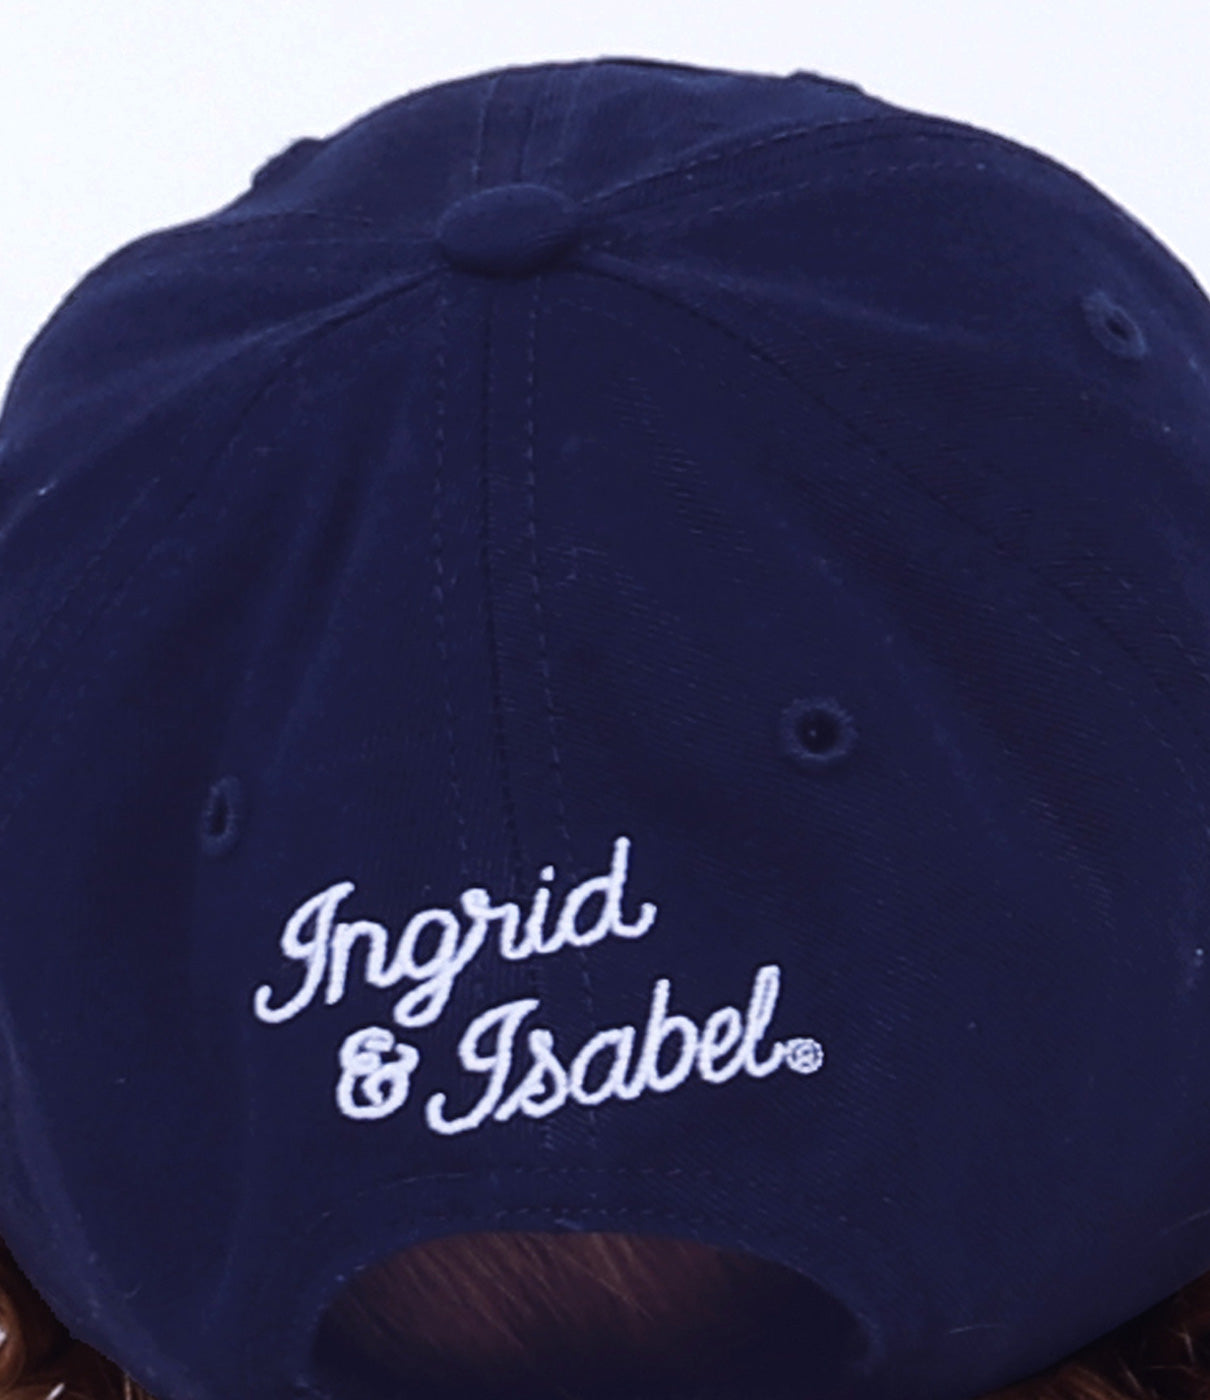 IN THE DETAILSChain stitched Babe Moniker on front of cap and chainstitched logo on back.